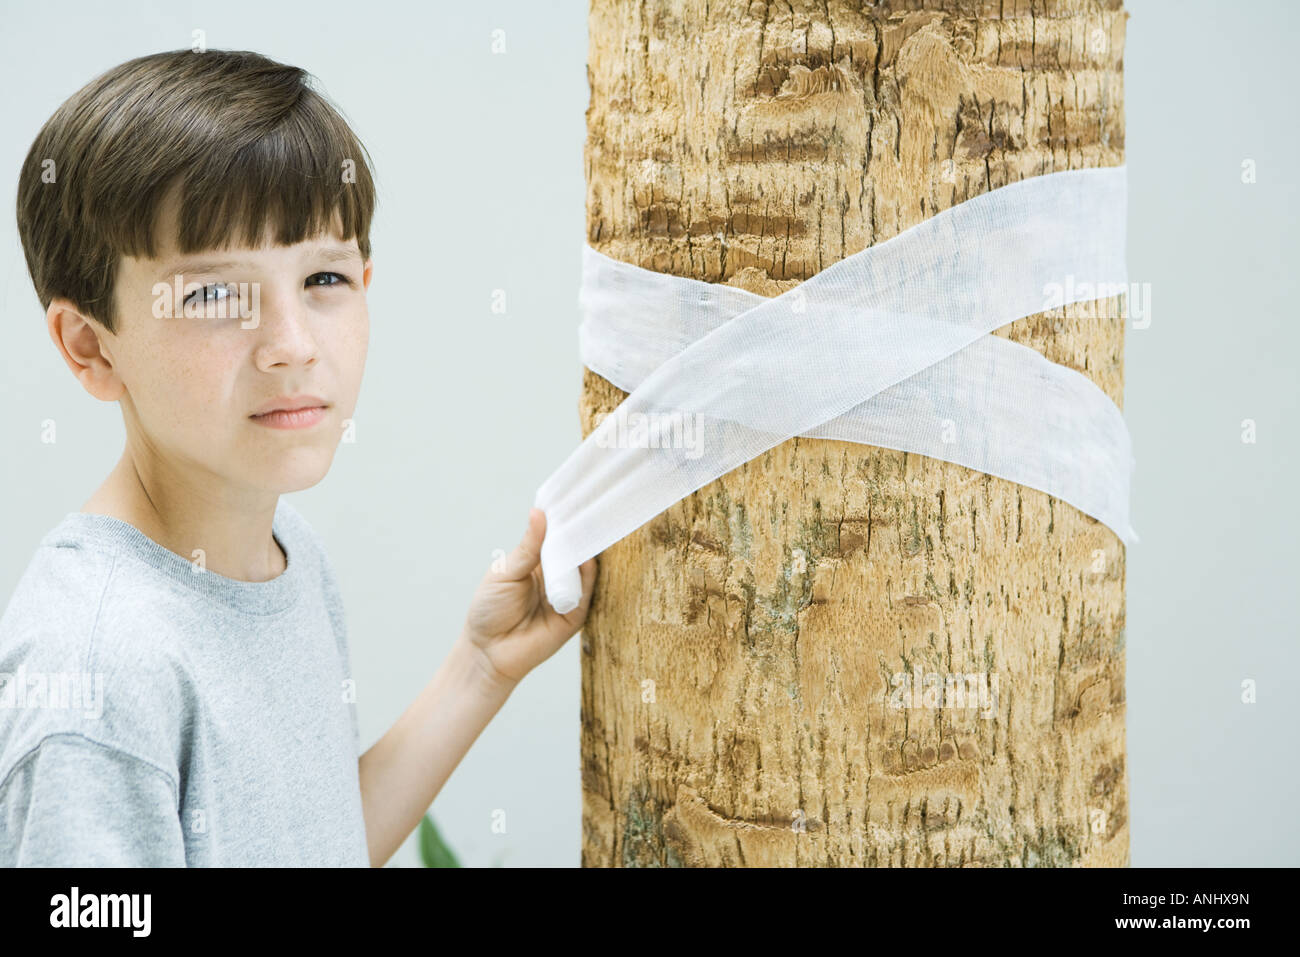 Boy wrapping bandage around tree trunk, looking at camera - Stock Image